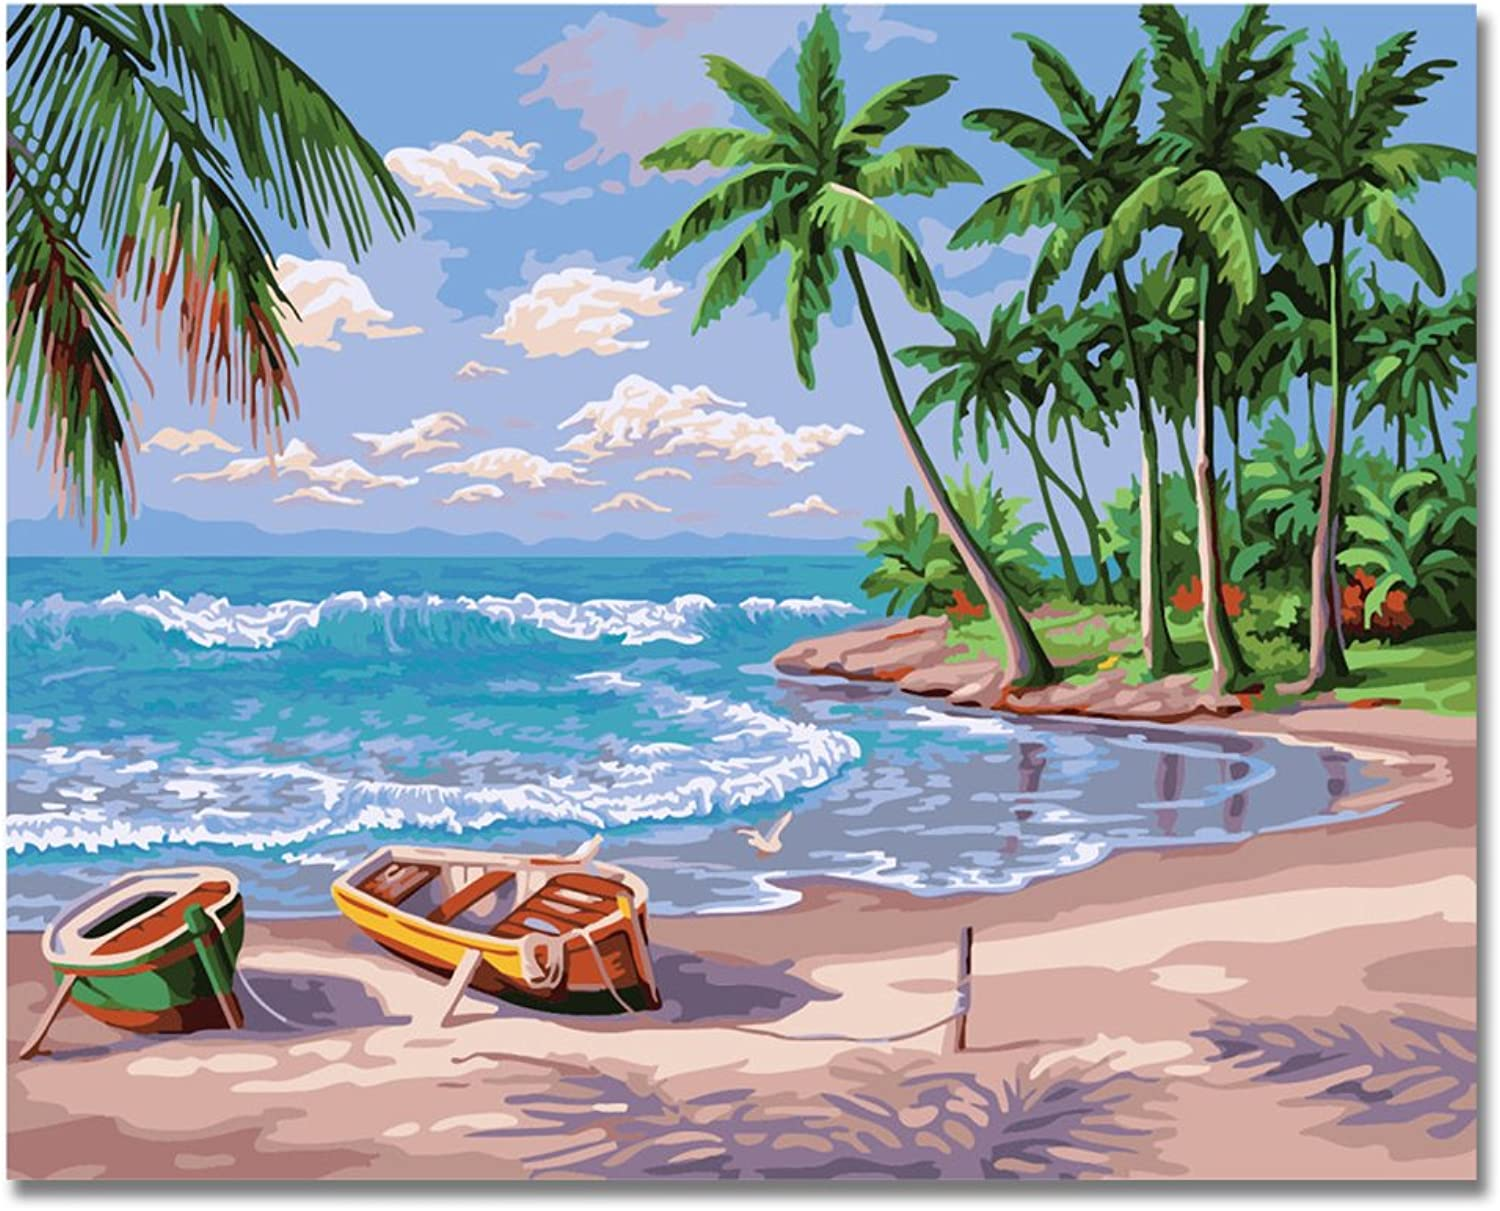 LIUDAO Paint by Numbers Kit for Beginner, Oil Painting on Canvas 16x20 Inch Without Frame (Holiday Beach)